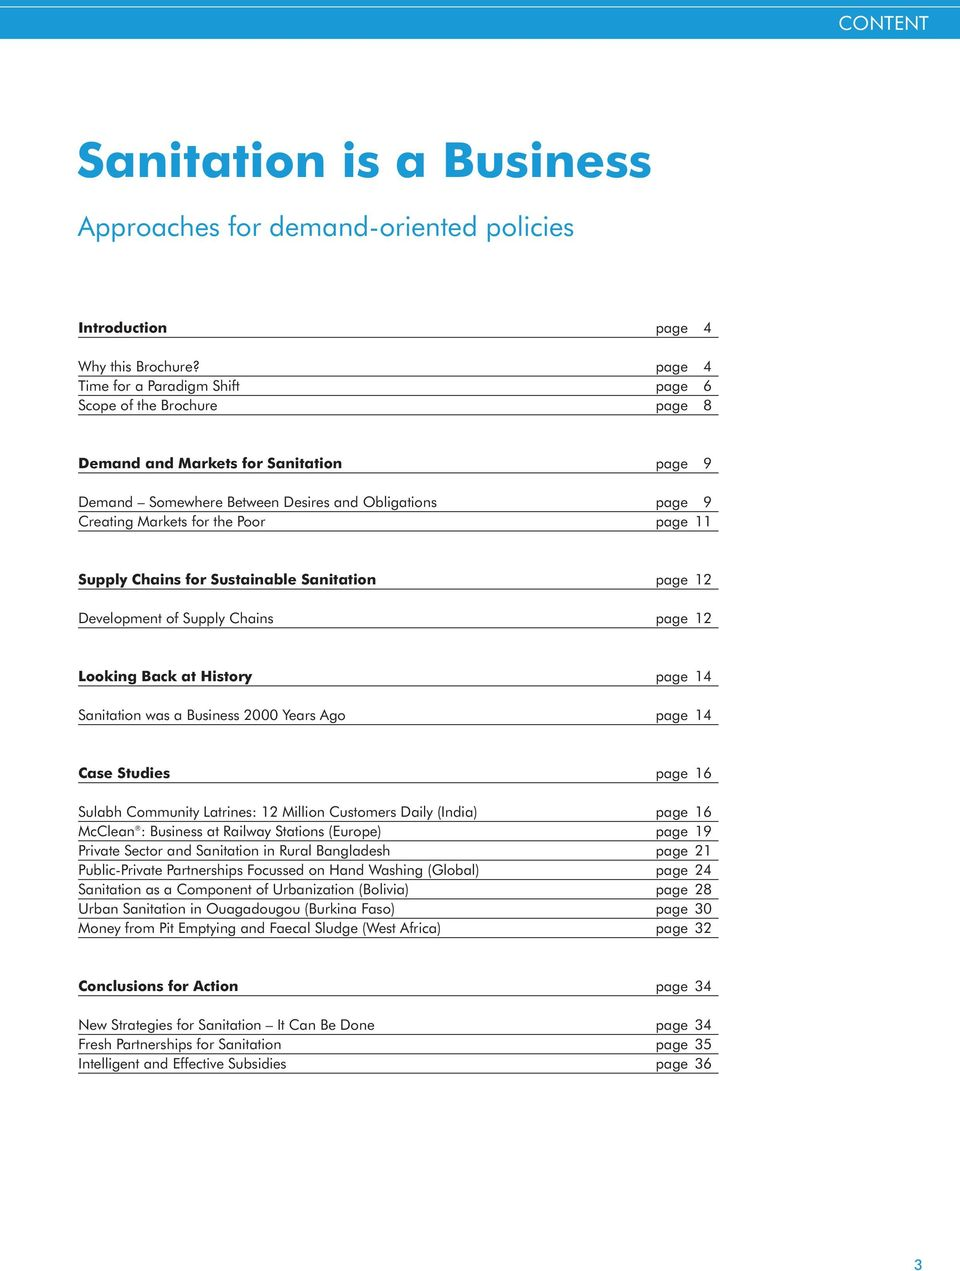 page 11 Supply Chains for Sustainable Sanitation page 12 Development of Supply Chains page 12 Looking Back at History page 14 Sanitation was a Business 2000 Years Ago page 14 Case Studies page 16